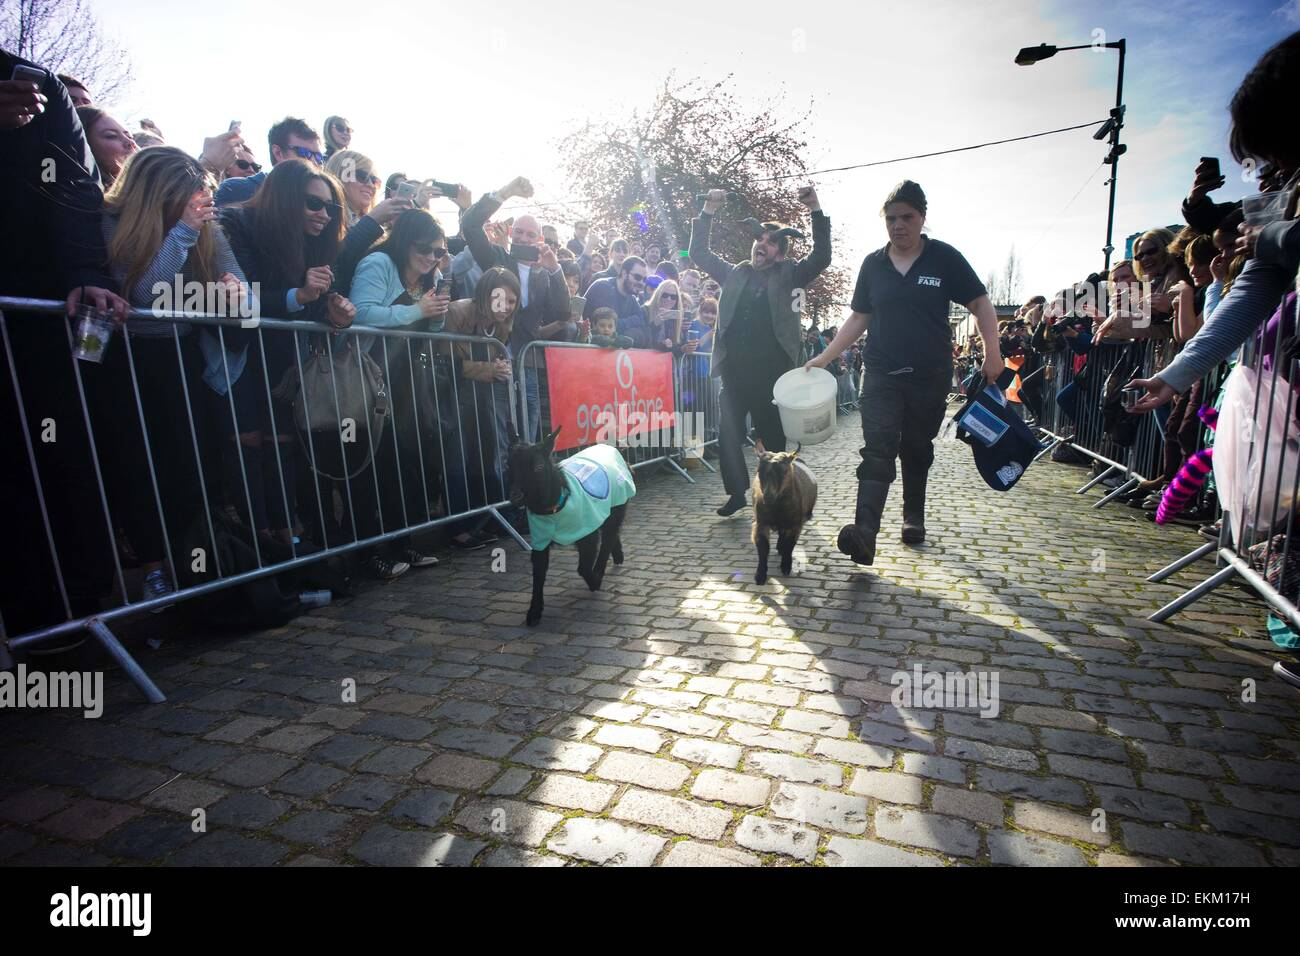 London, United Kingdom. 11th Apr, 2015. The racing goats 'Cambridge' and 'Oxford' running down the - Stock Image